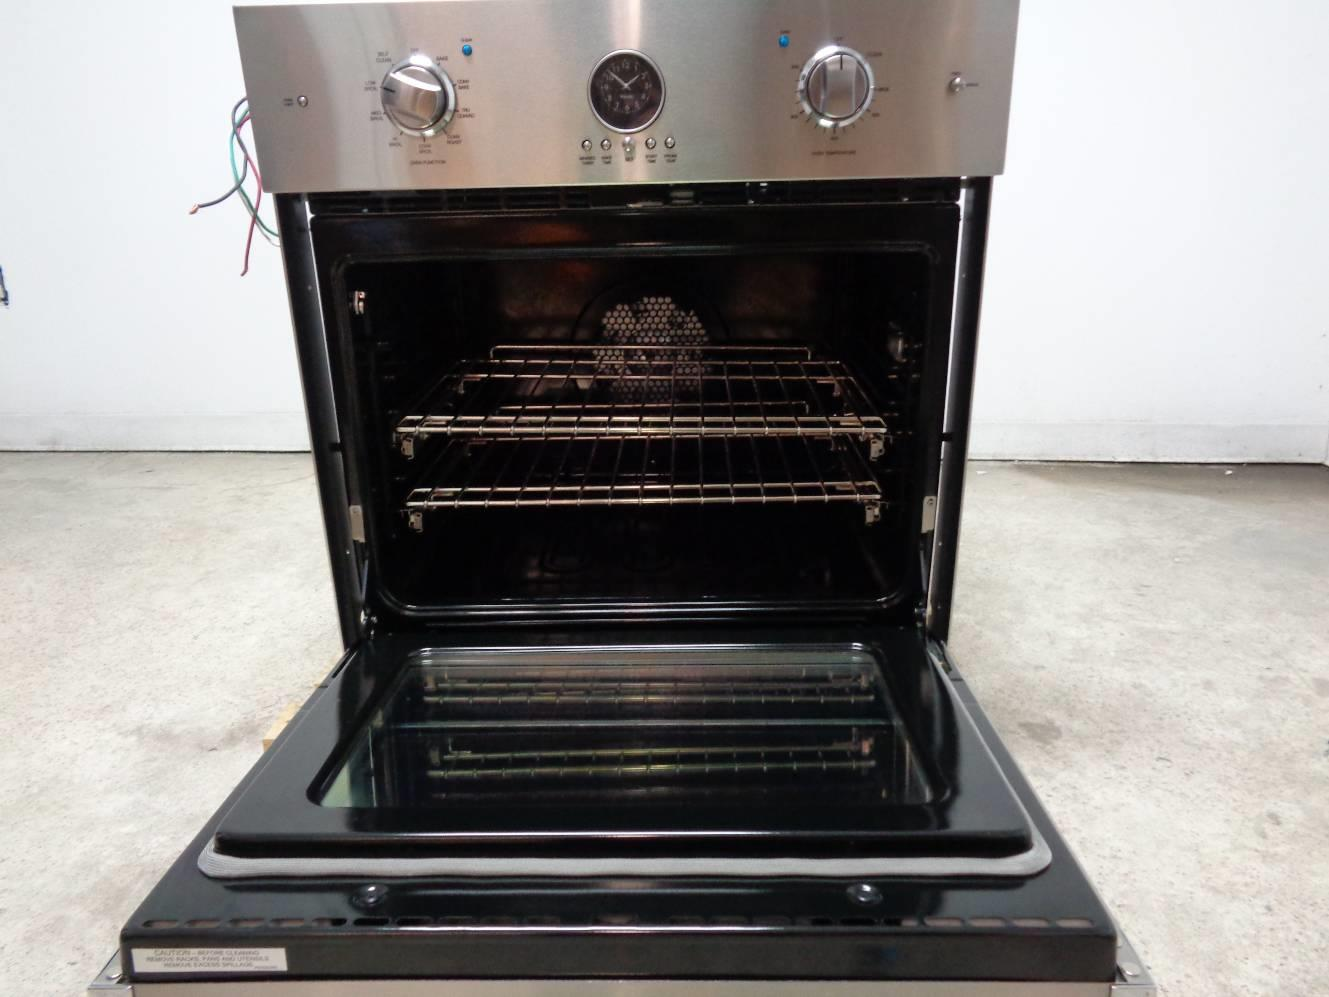 view oven toaster viking in front steel countertop stainless microwave